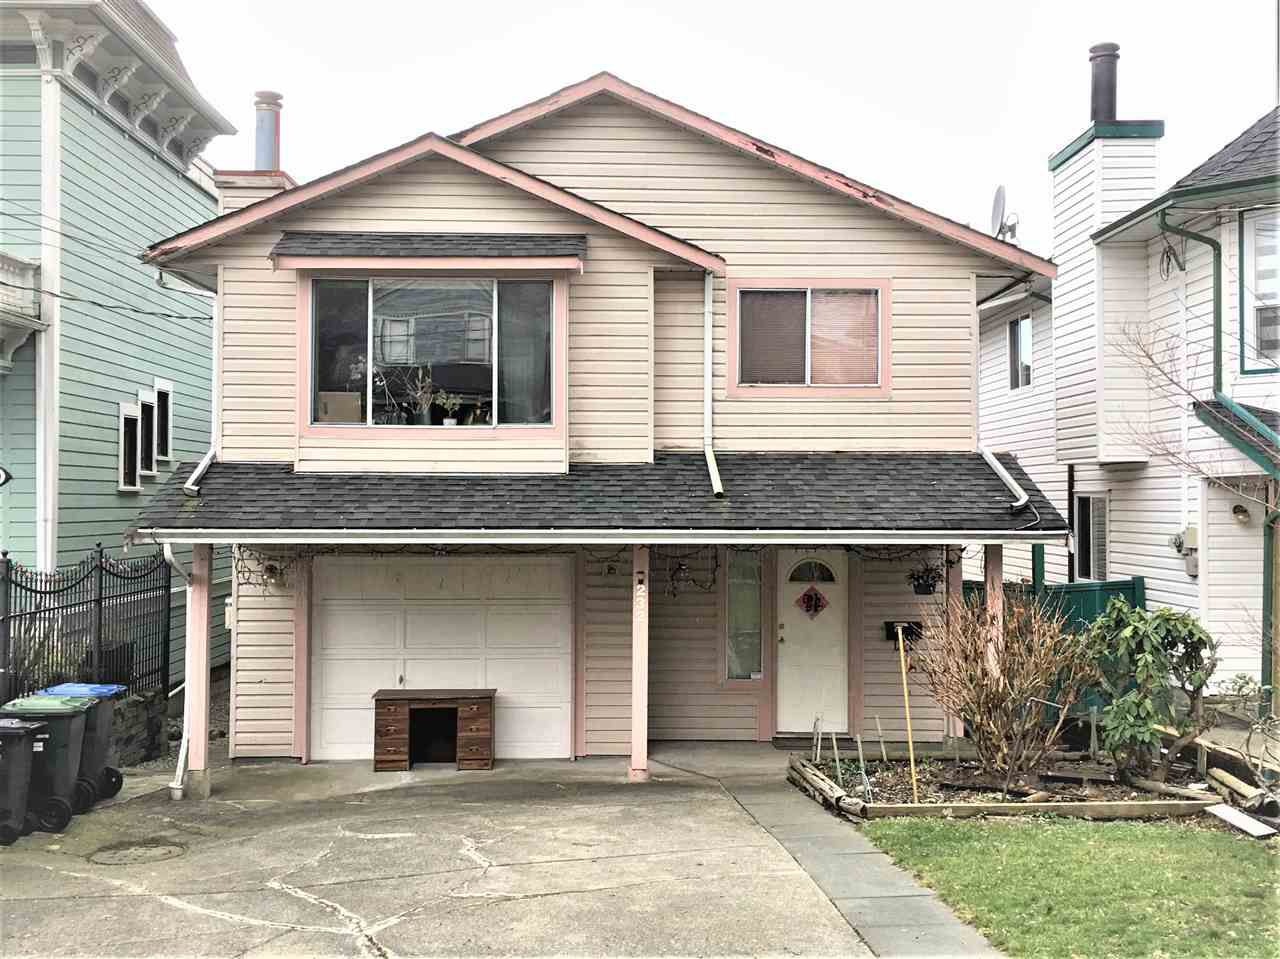 Main Photo: 232 NINTH Street in New Westminster: Uptown NW House for sale : MLS®# R2328147